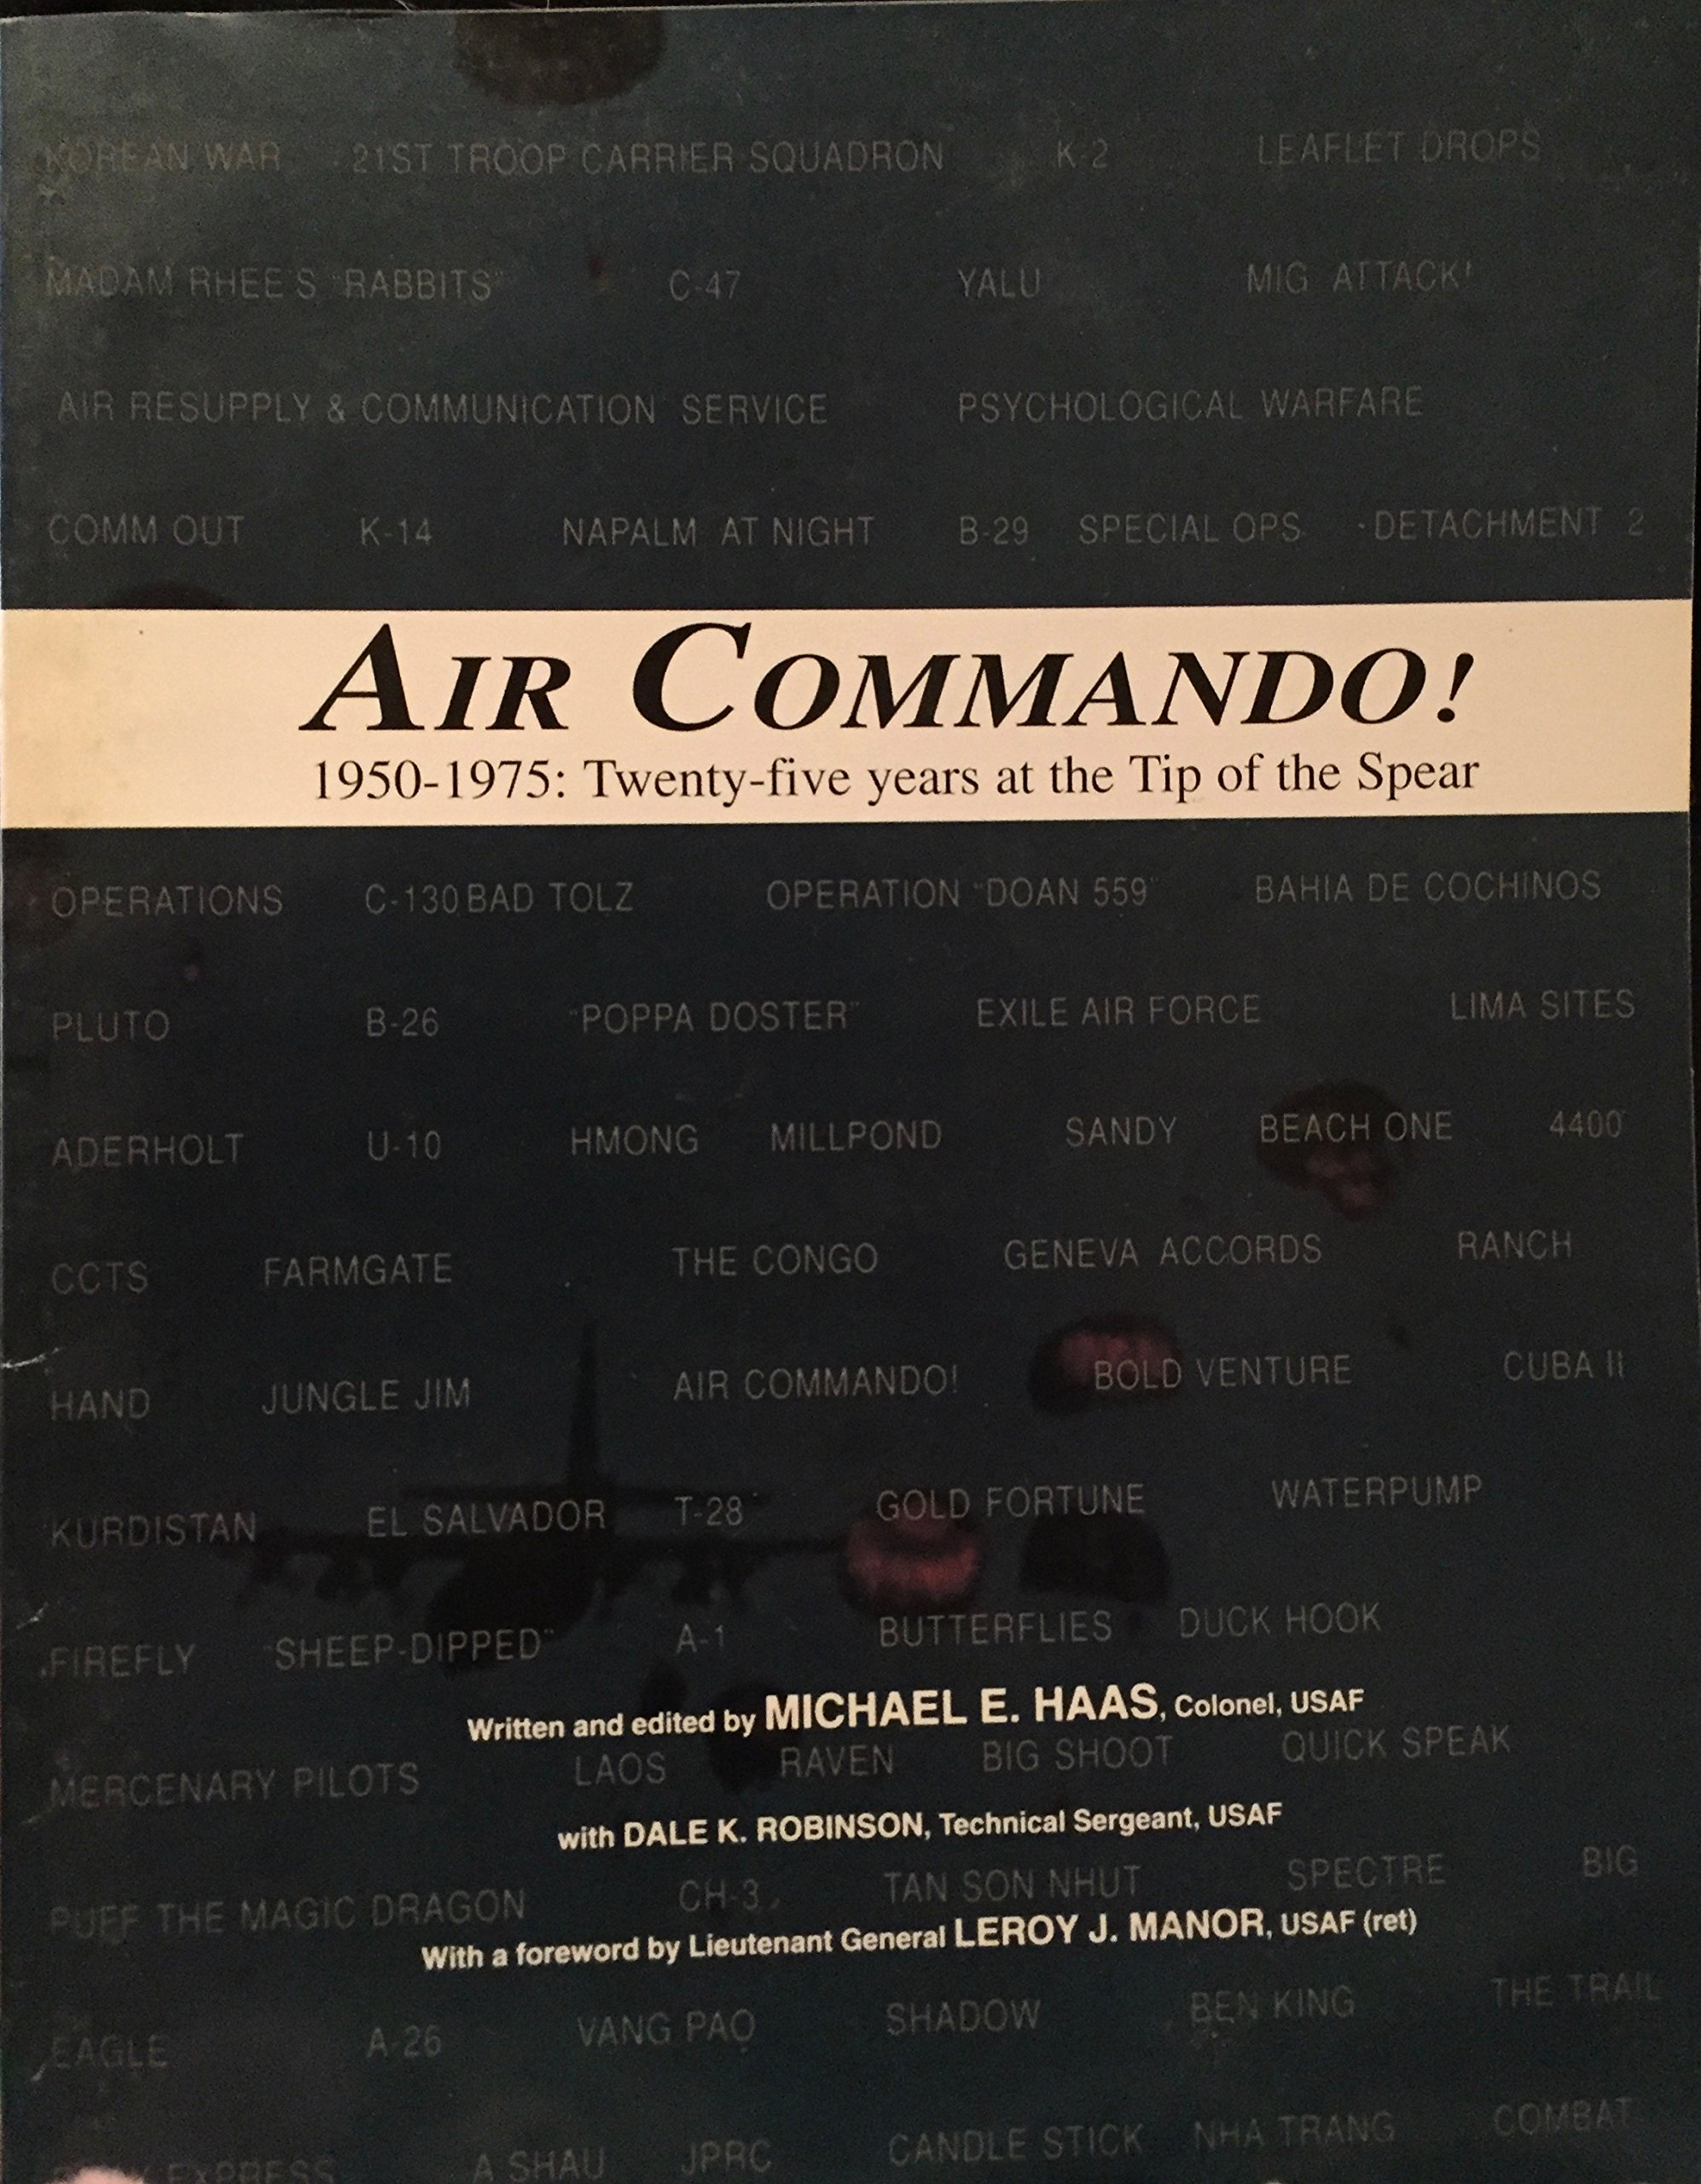 Air commando!: 1950-1975 : twenty-five years at the tip of the spear